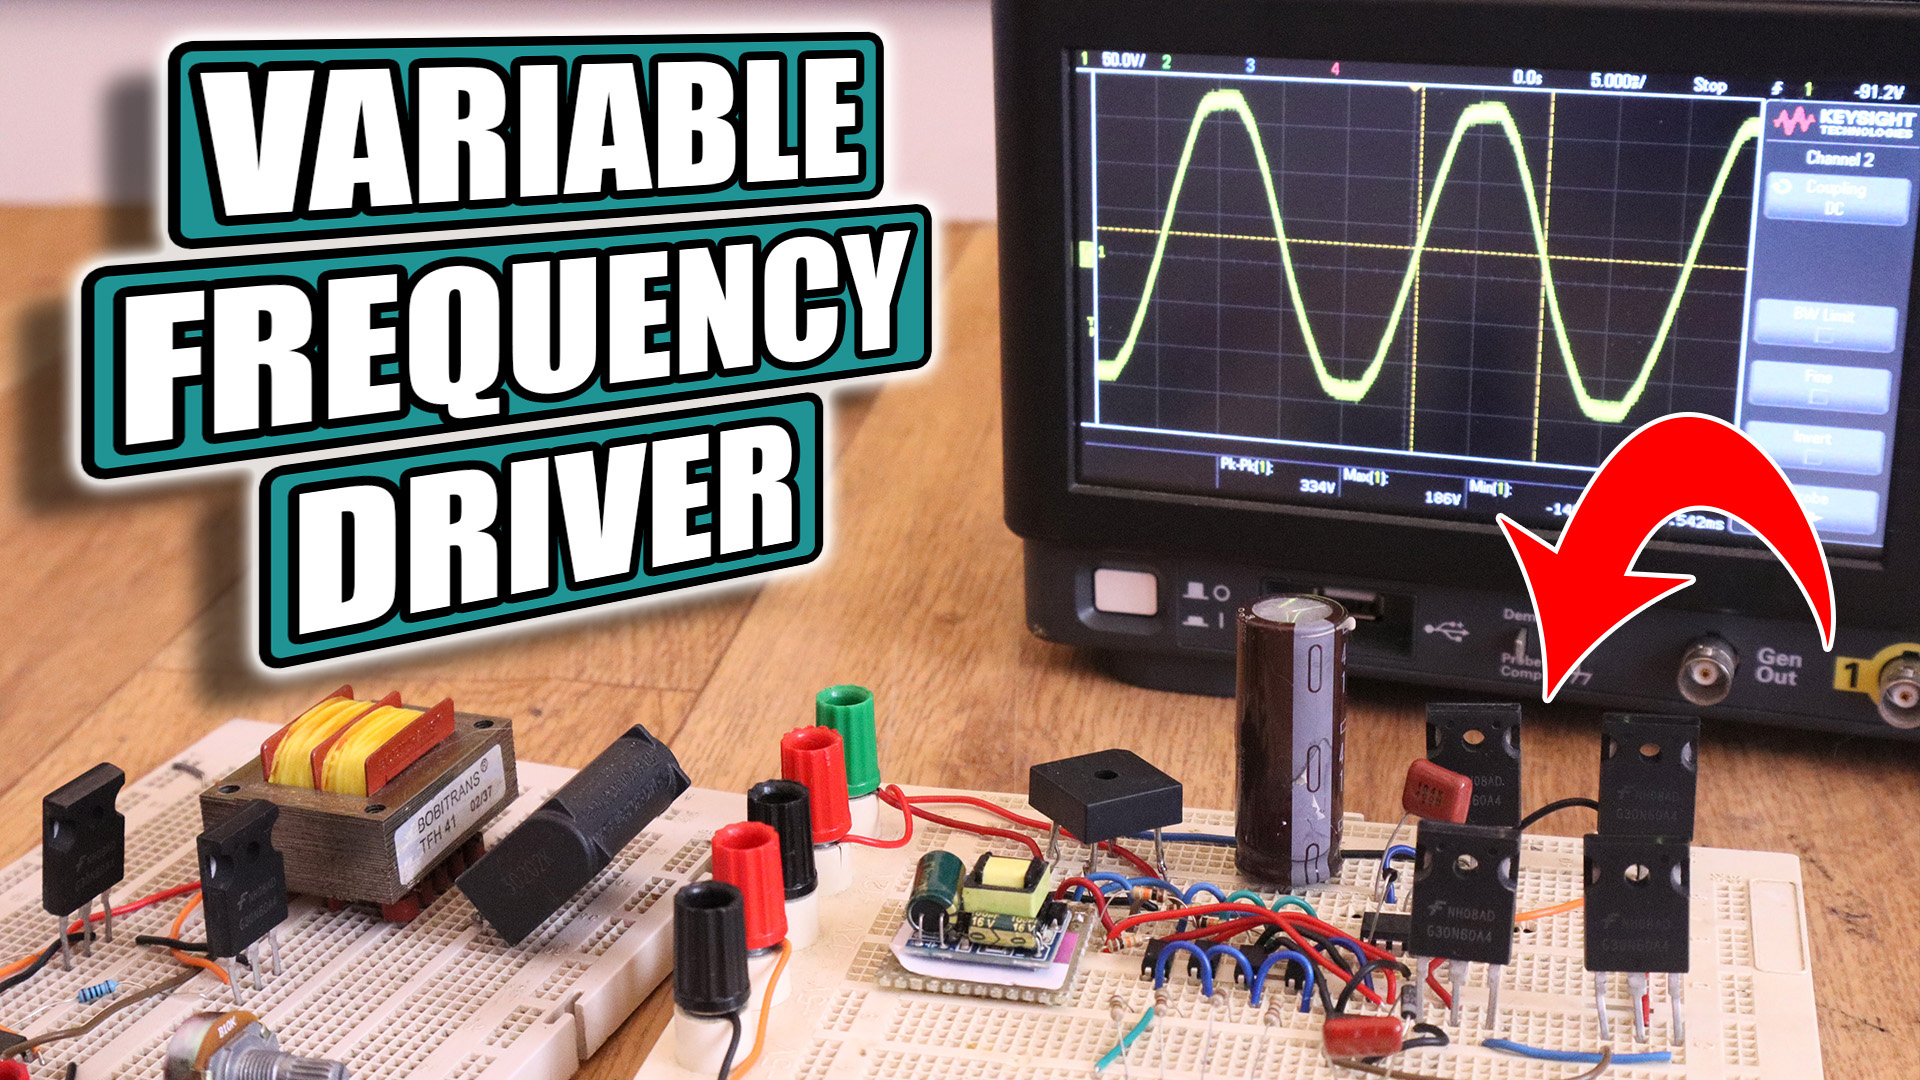 Variable Frequency Driver Prototype Vfd